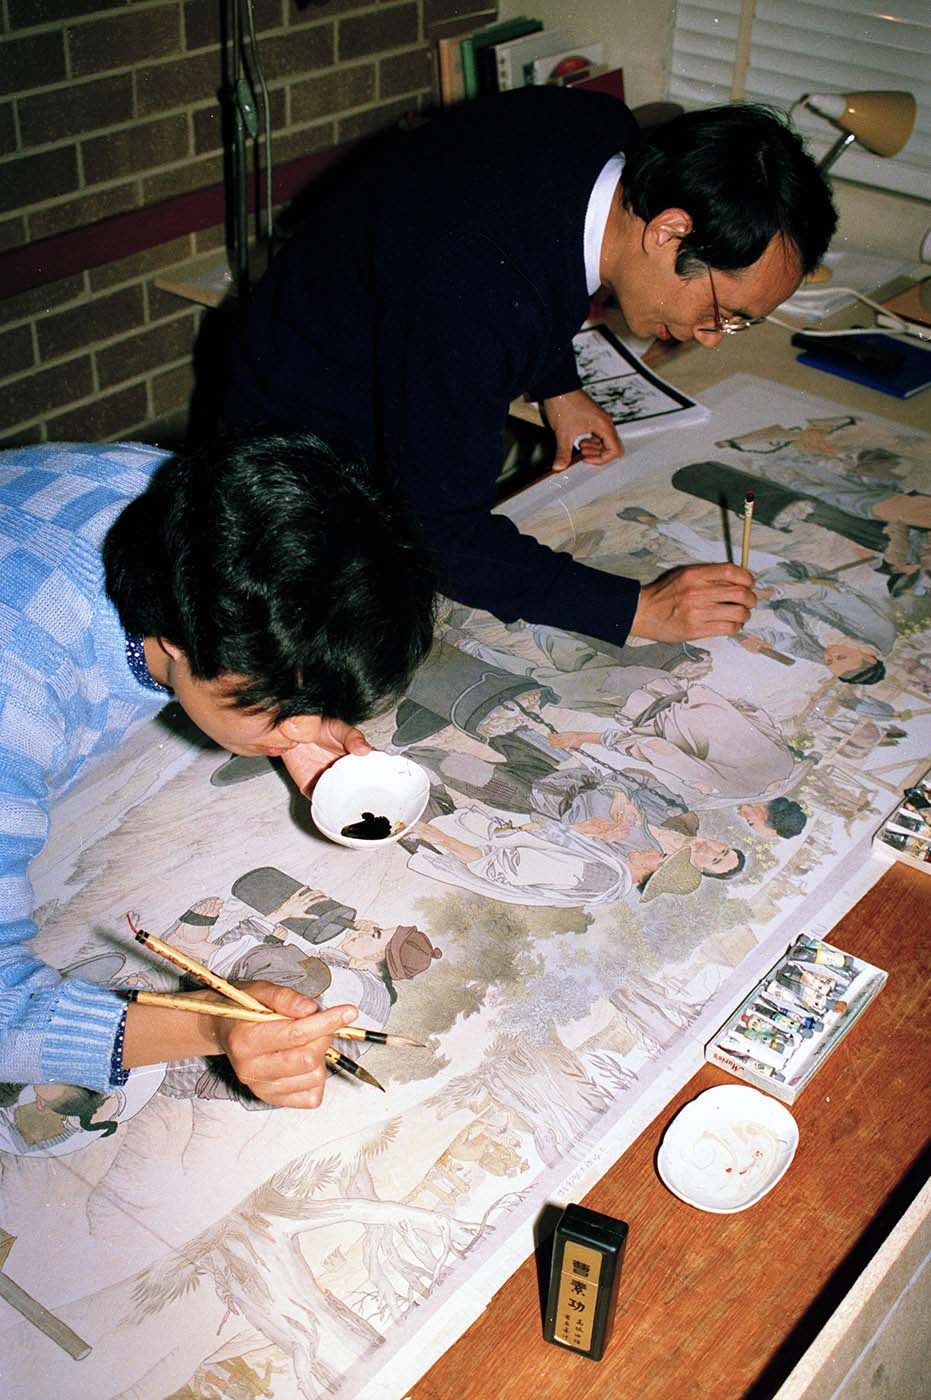 Artists Mo Xiangyi (right) and Wang Jingwen work on painting the Harvest of Endurance scroll. - click to view larger image